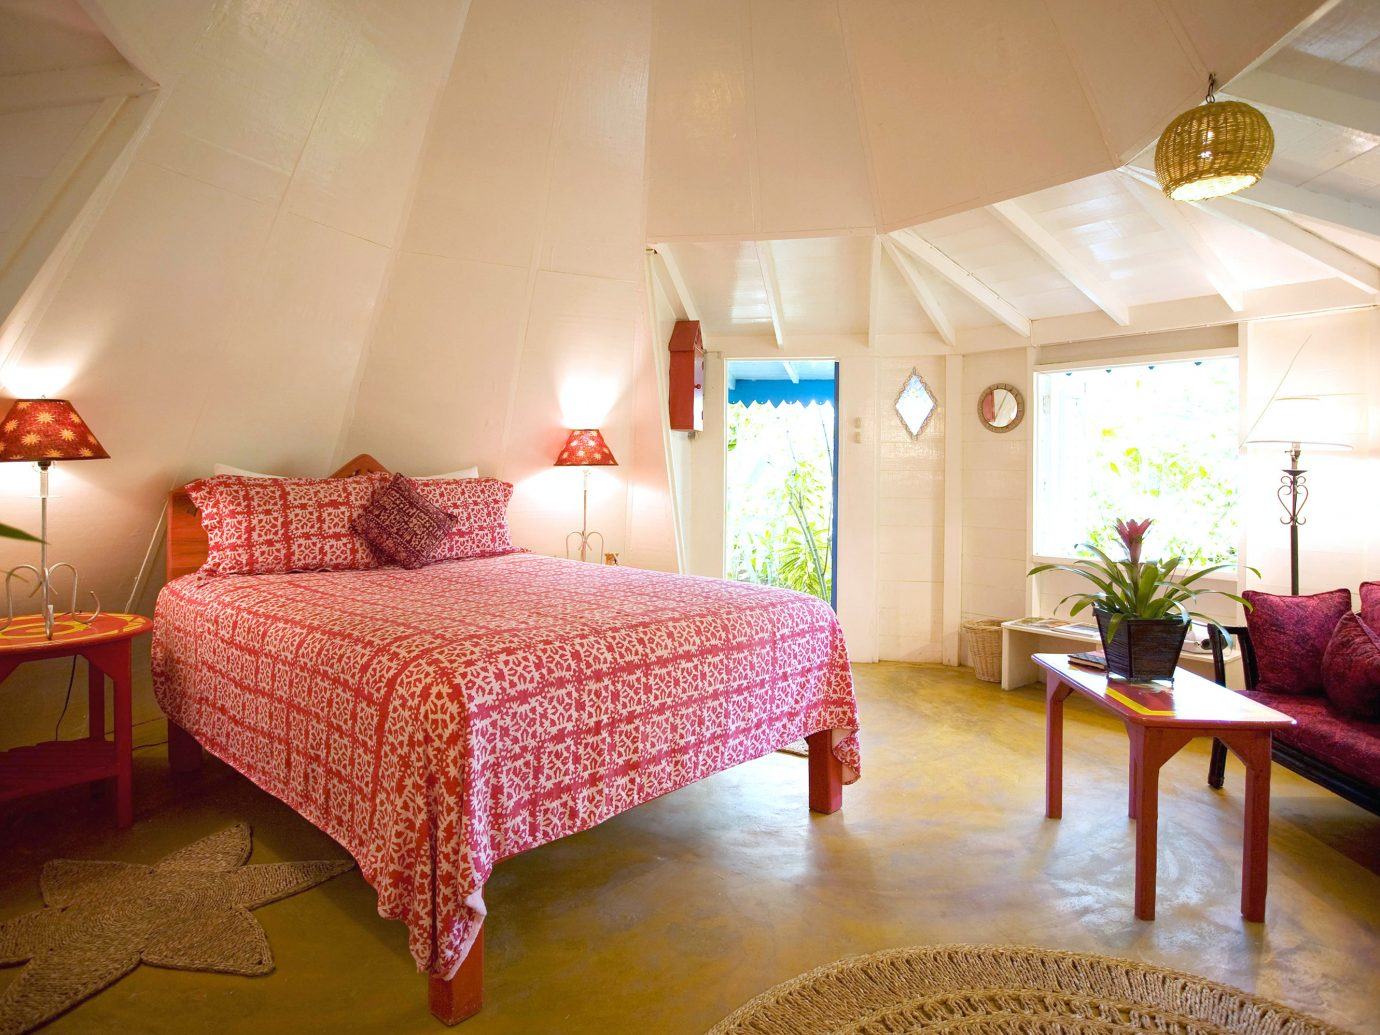 Bedroom at The Caves in Jamaica